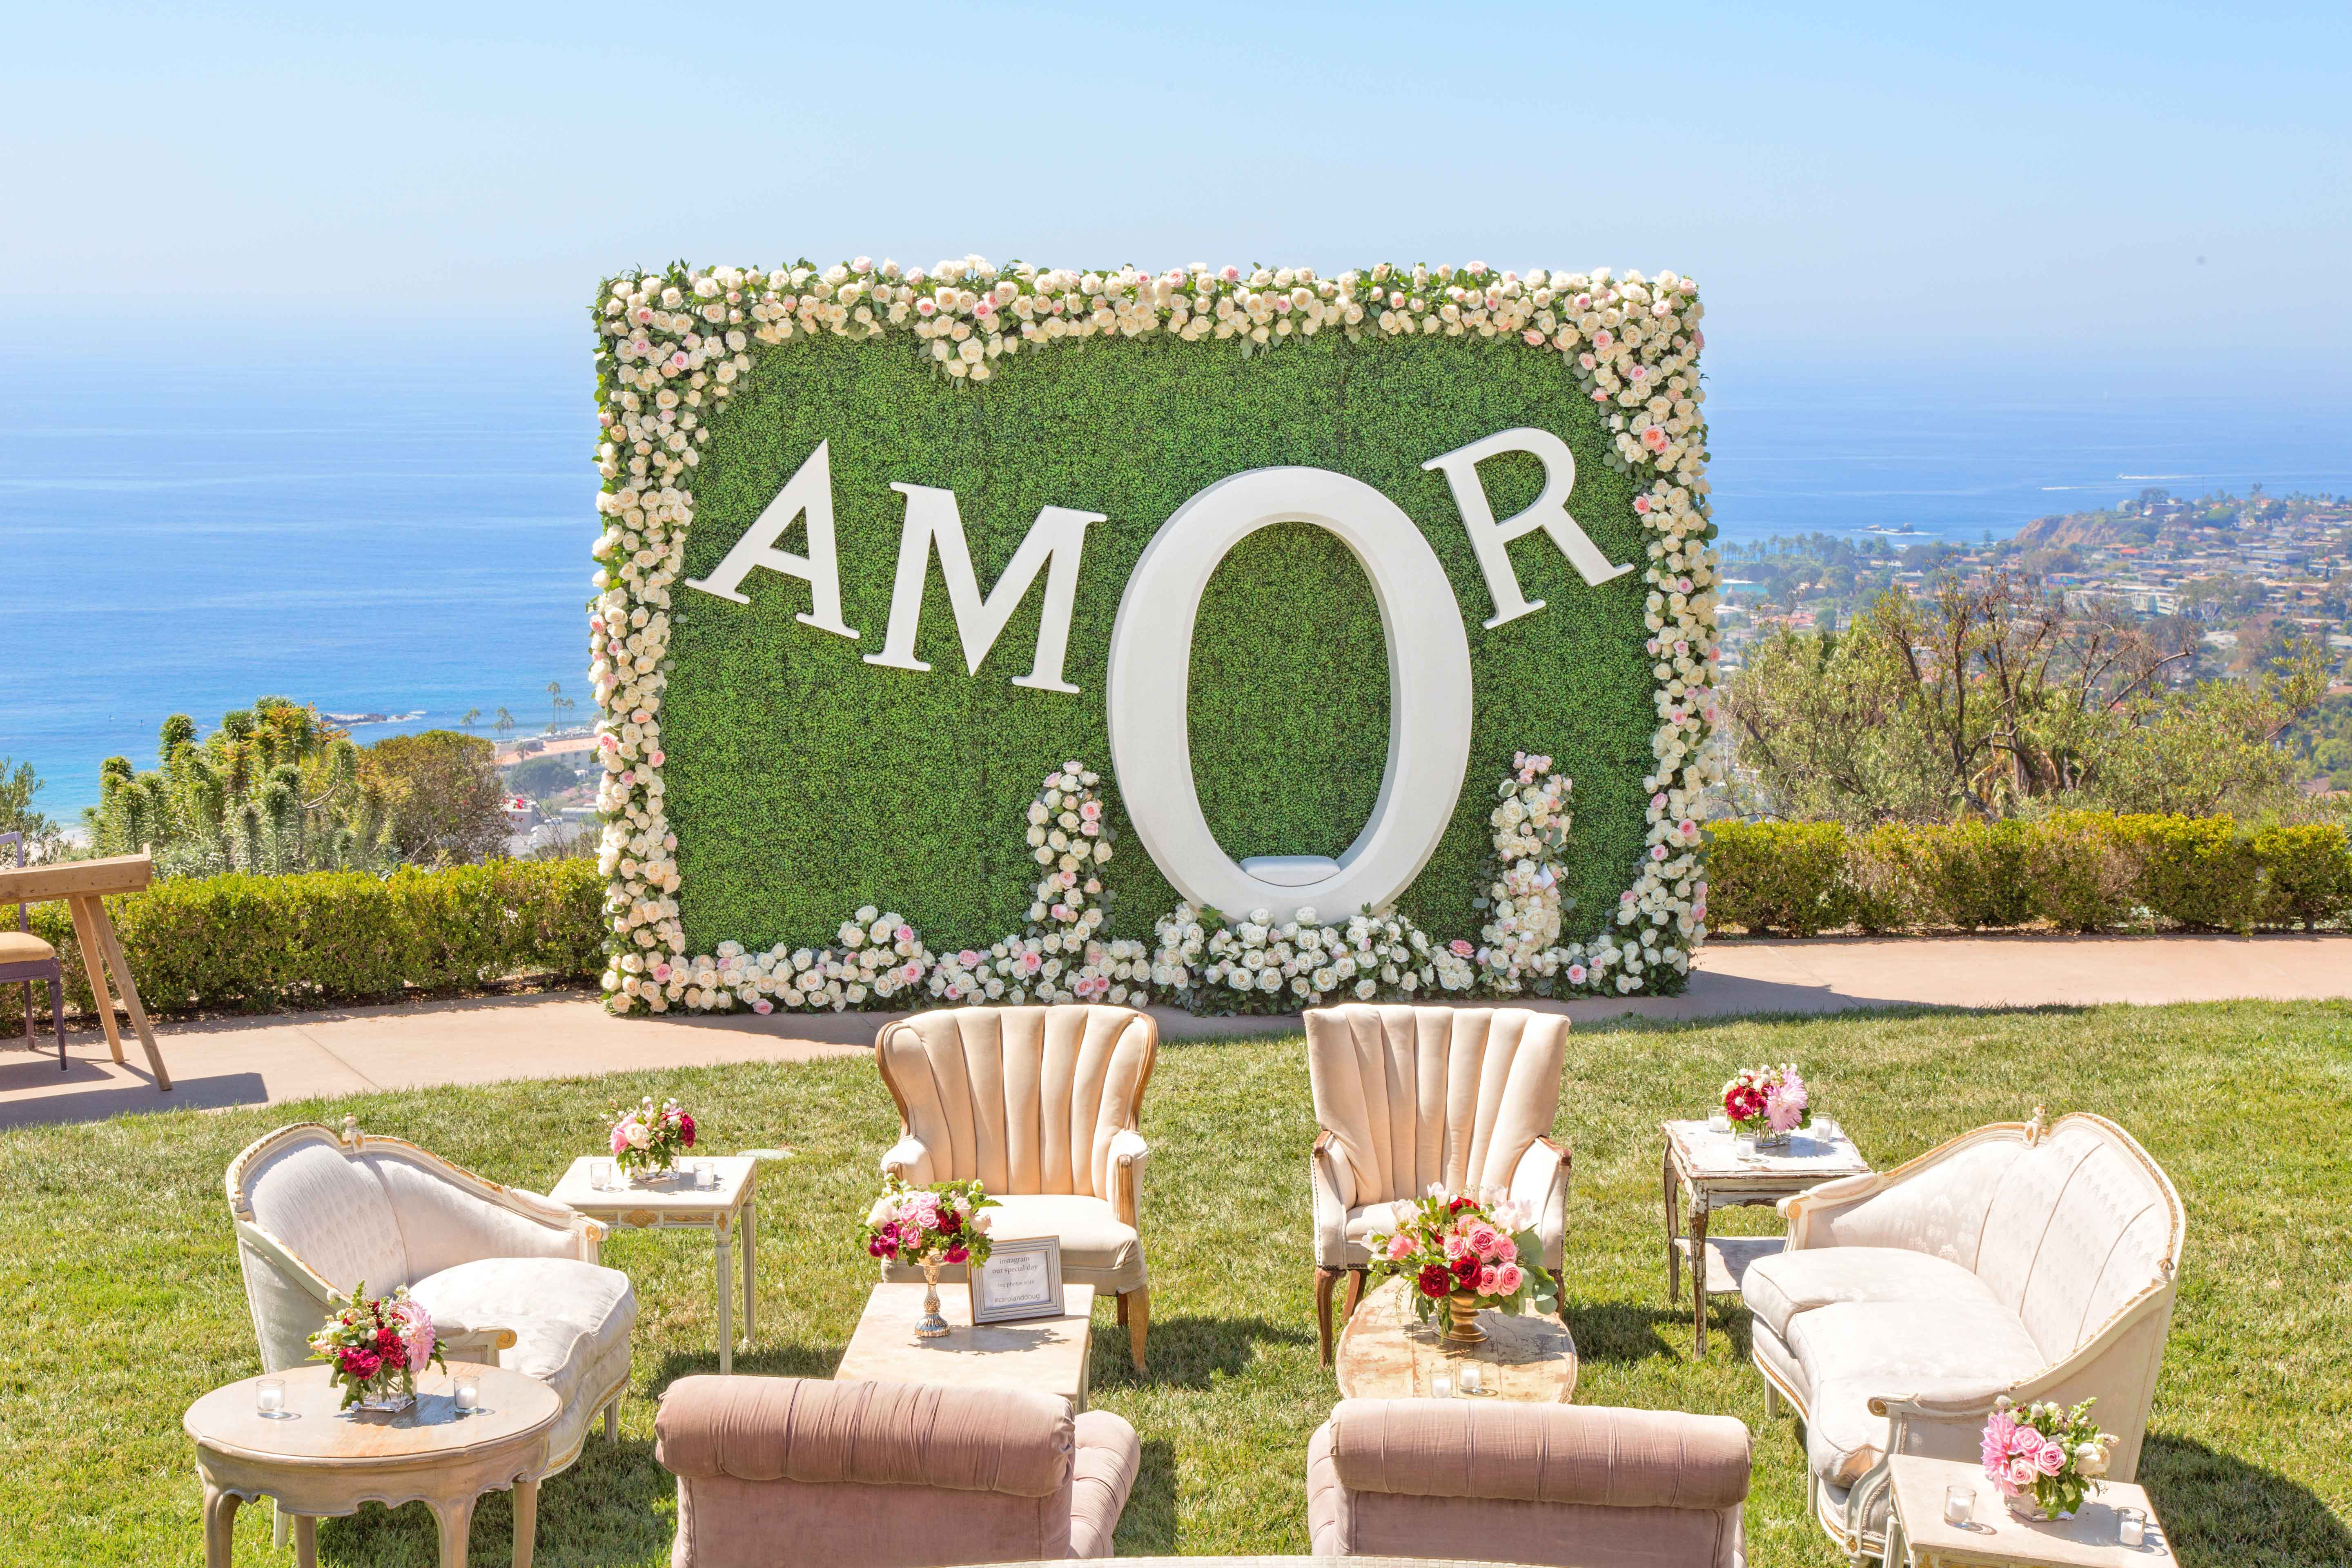 Hedge photo booth with Amore lettering